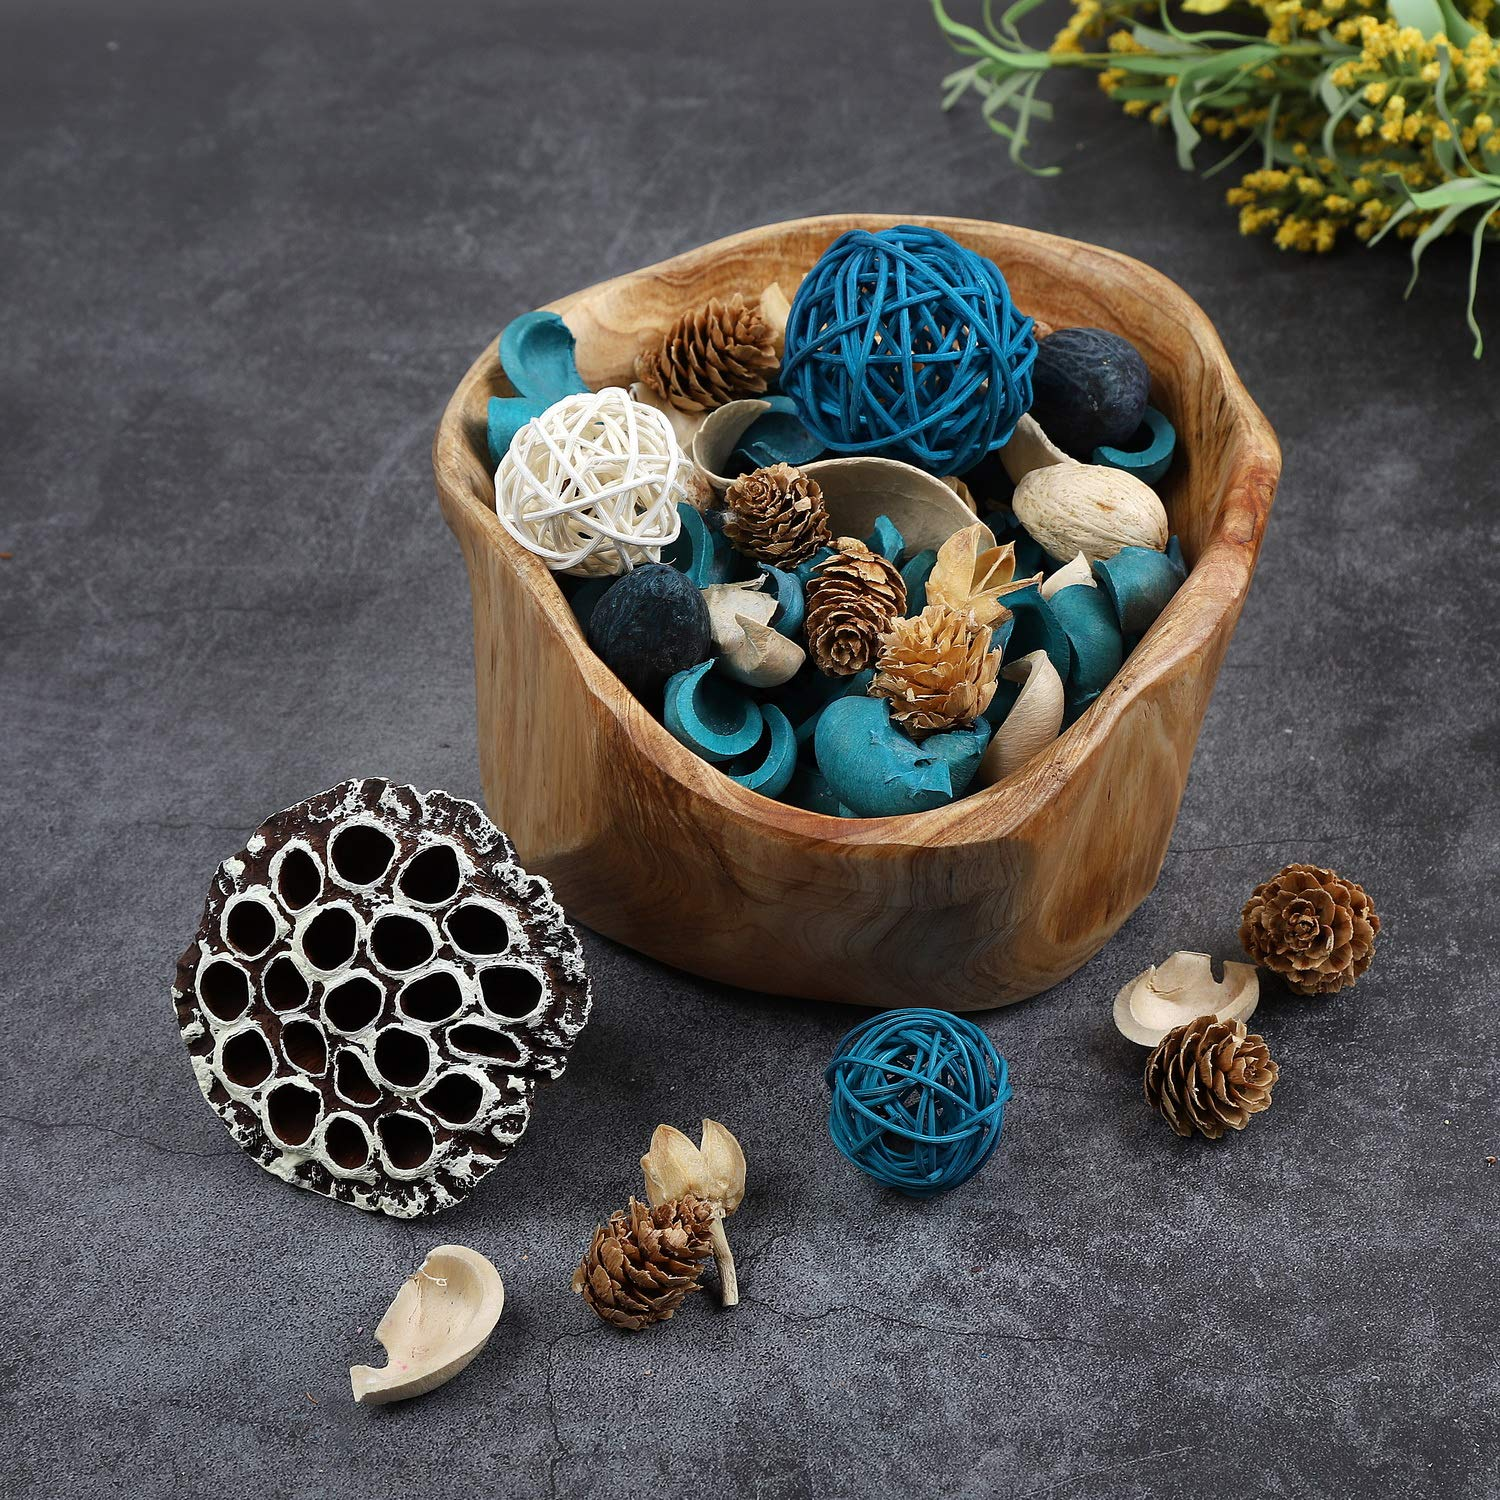 Qingbei Rina Ocean Scent Summer Potpourri Bag Decorative Perfume Sachet, Rattan Balls Lotus Pods Pine Cones Dried Flowers and Plants, 9.9 Ounce Turquoise Blue by Qingbei Rina (Image #6)